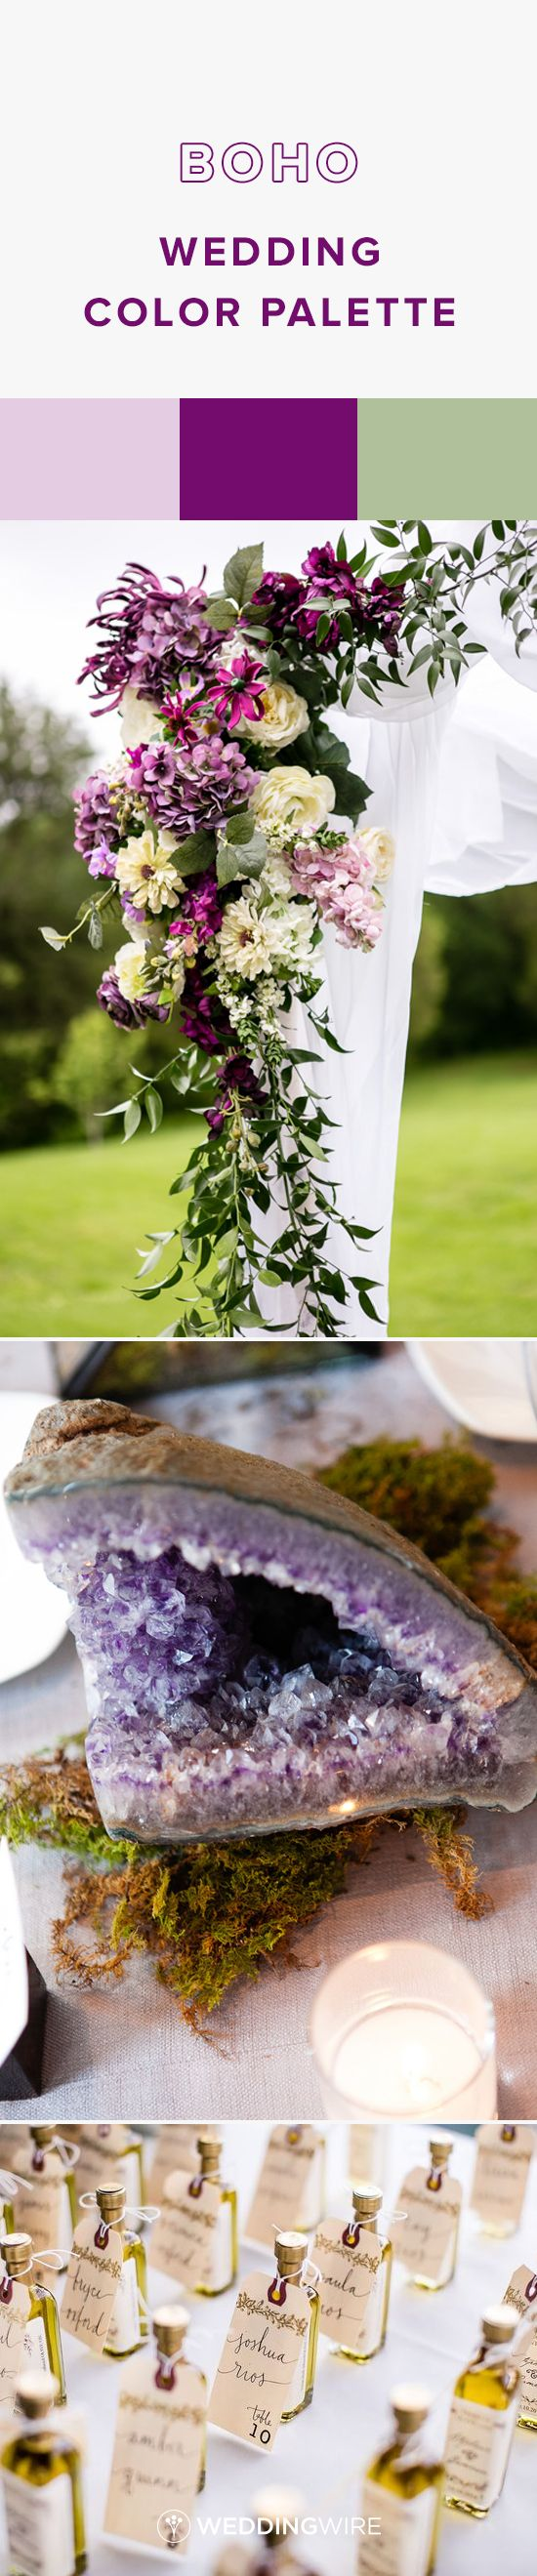 Boho Wedding Color Palette Idea - Lavender, Plum and Sage Green Boho Wedding Color Palette - see more wedding color palette ideas on @weddingwire! {The Collection; Melissa Kelsey Photography; Kreate Photography & Design}